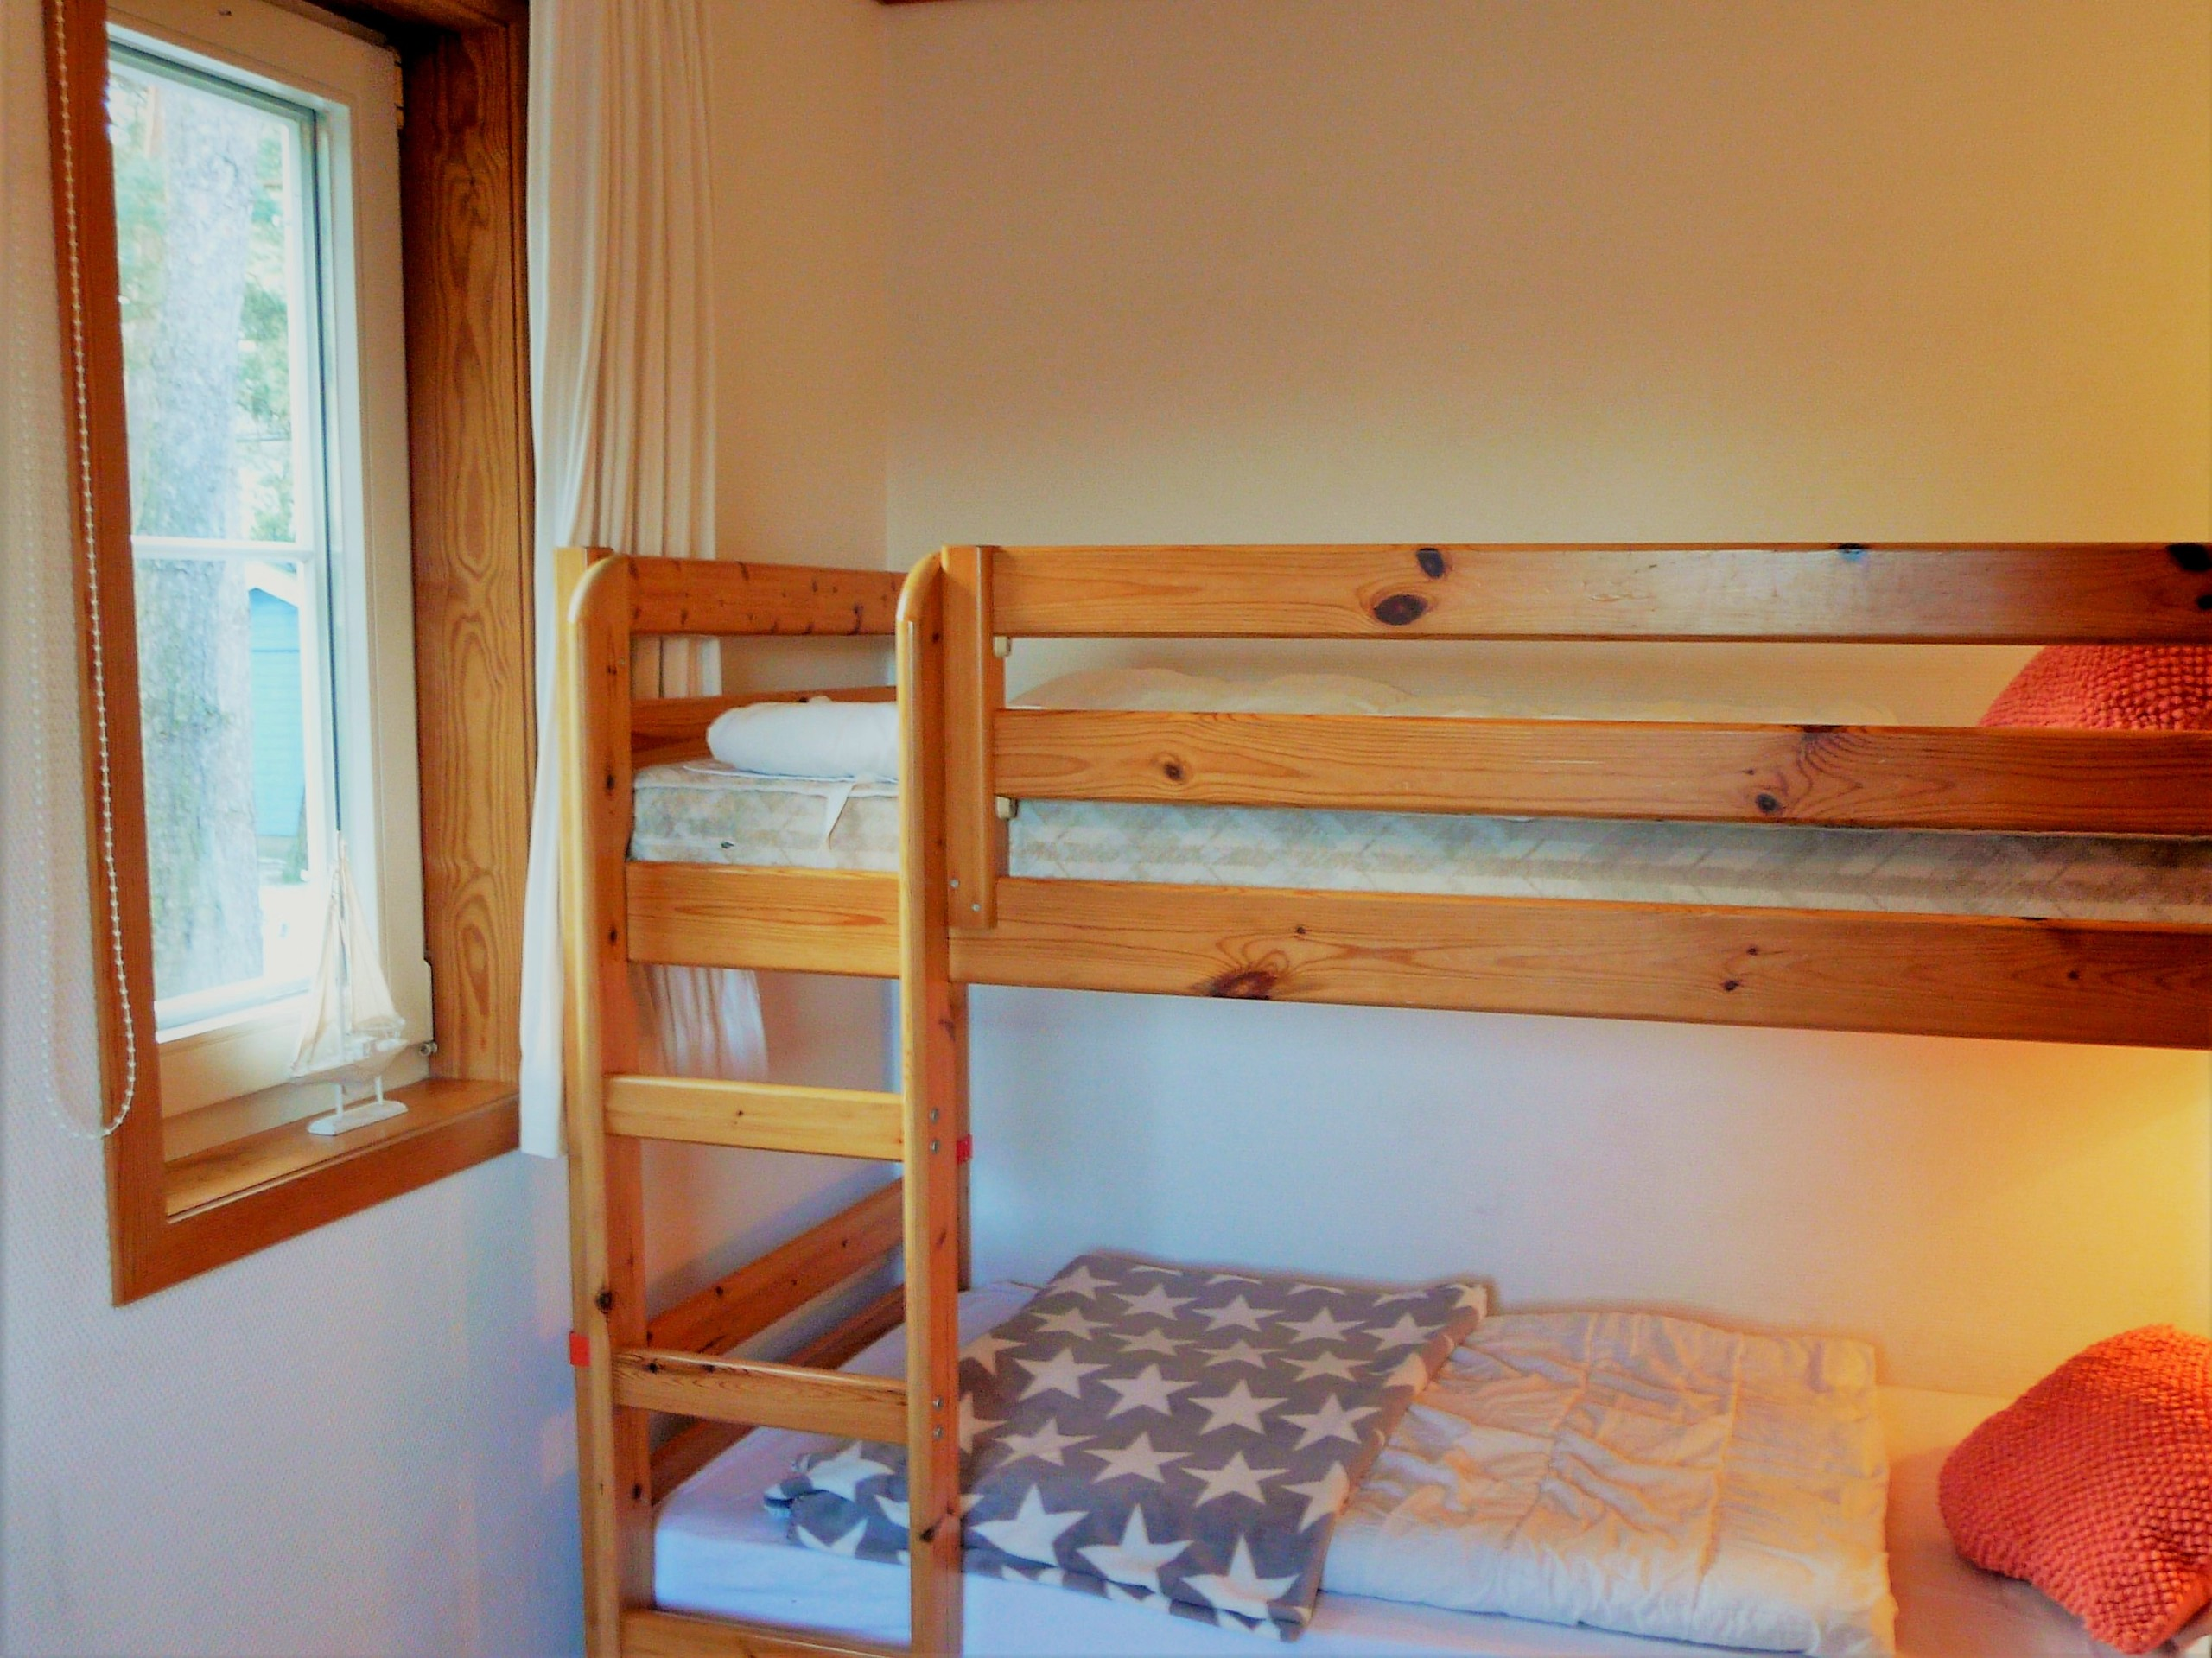 Separates Kinderzimmer mit Stockbett